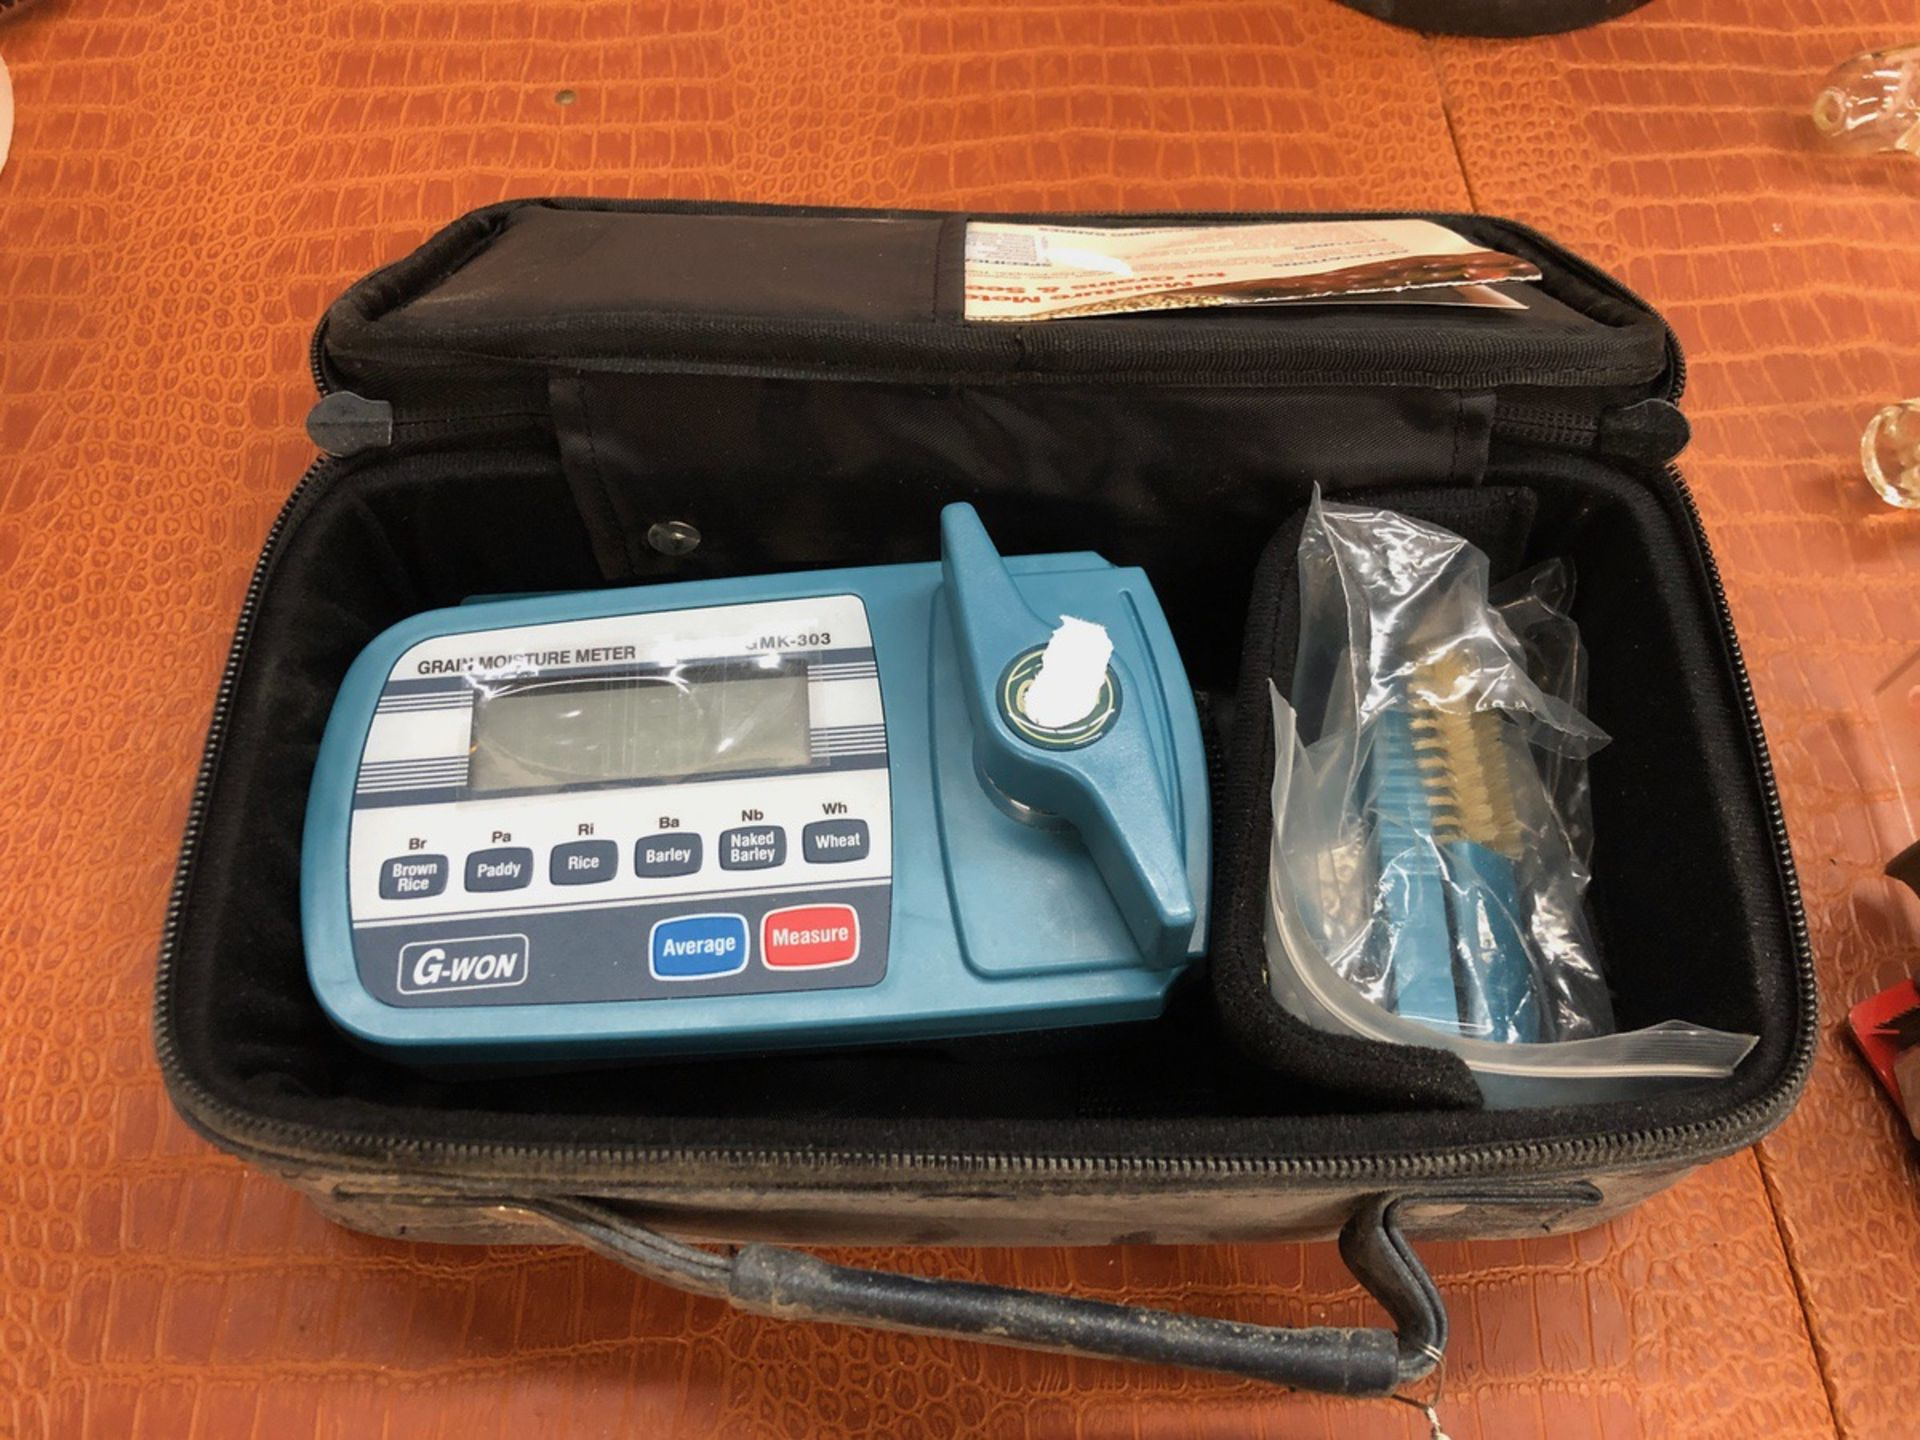 Lot 34 - G-Won Grain Moisture Meter, Model GMK-303 | Sub to Bulk | Rig Fee: $30 or HC